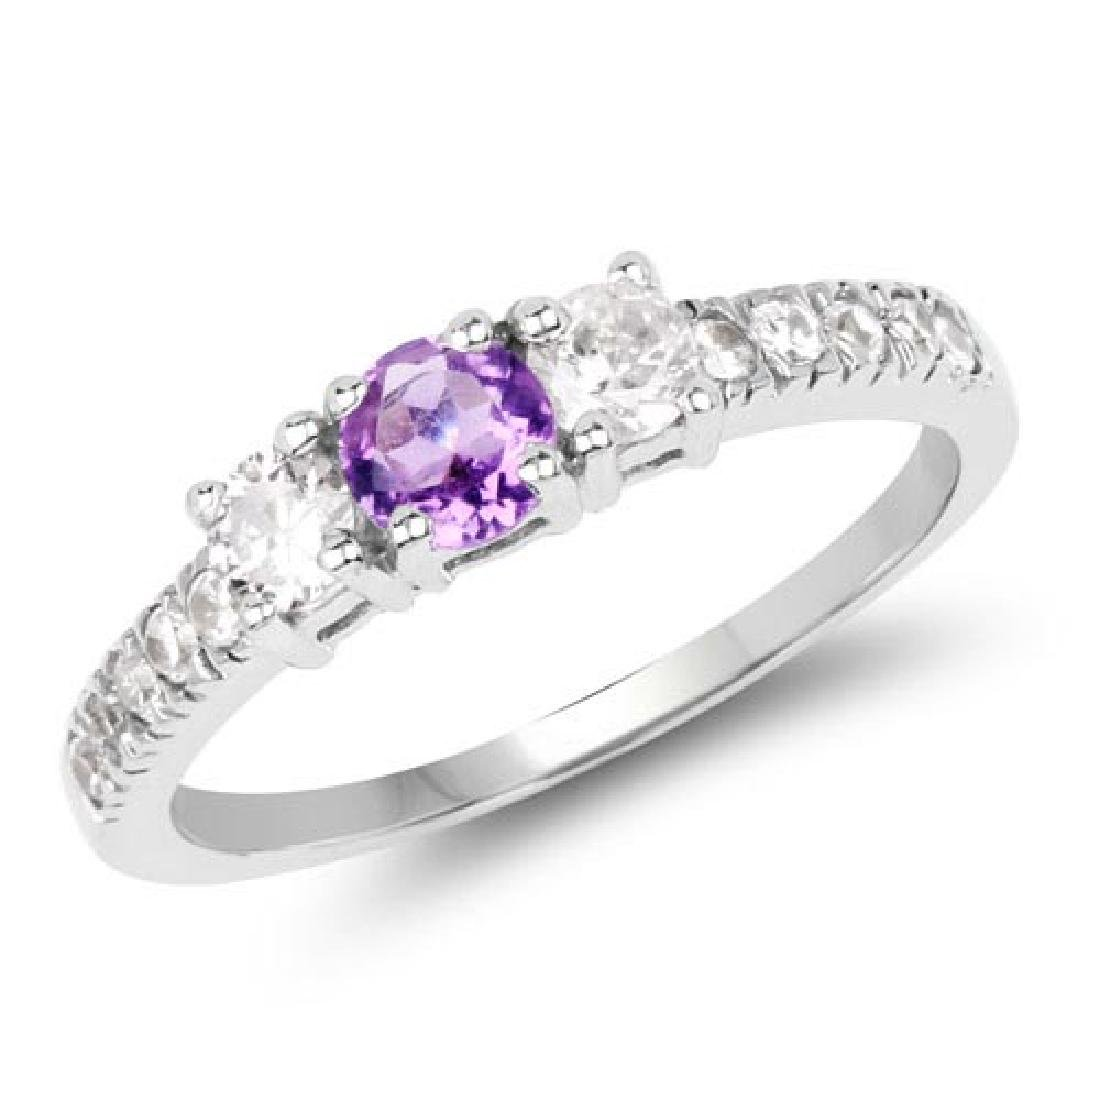 1.52 Carat Genuine Amethyst and White Cubic Zirconia .9